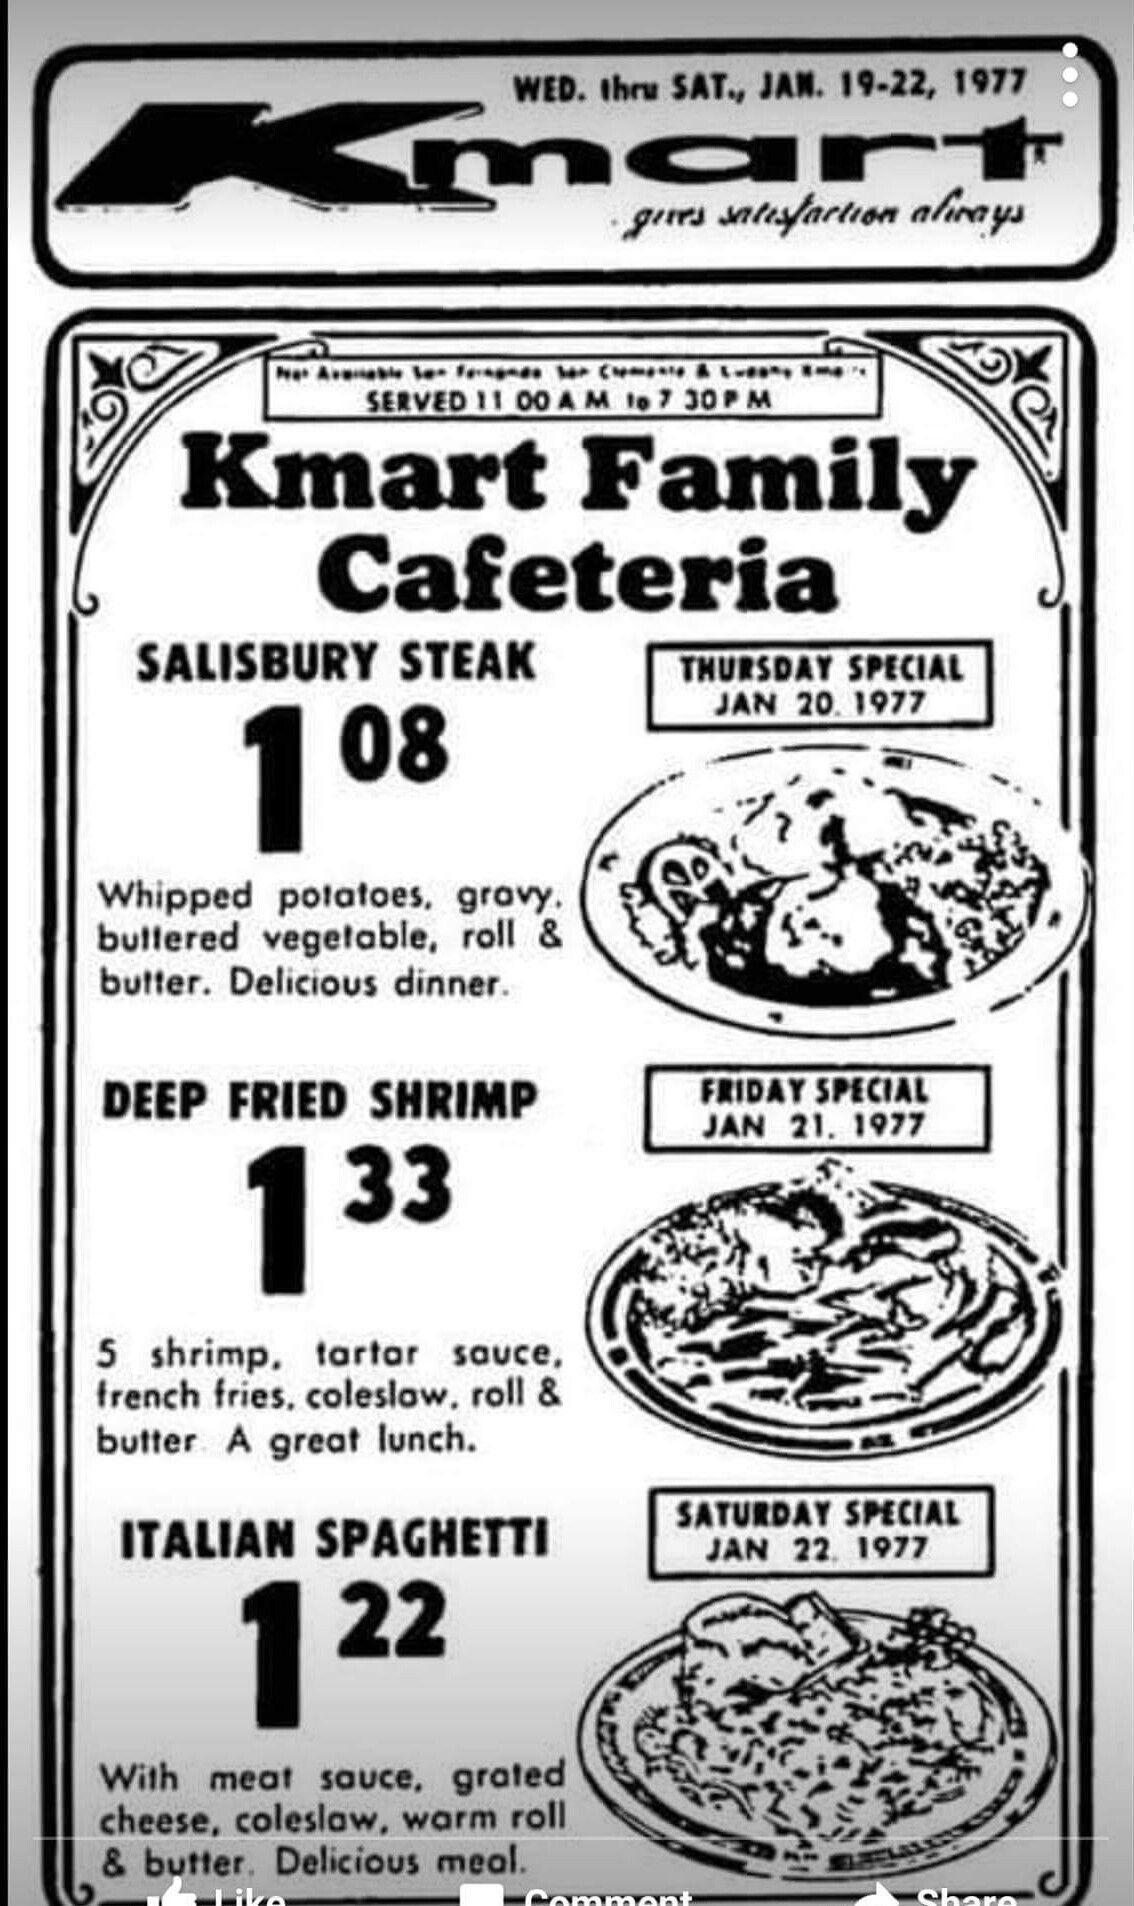 1970s Vintage Kmart Family Cafeteria Ad January 1977 Retro